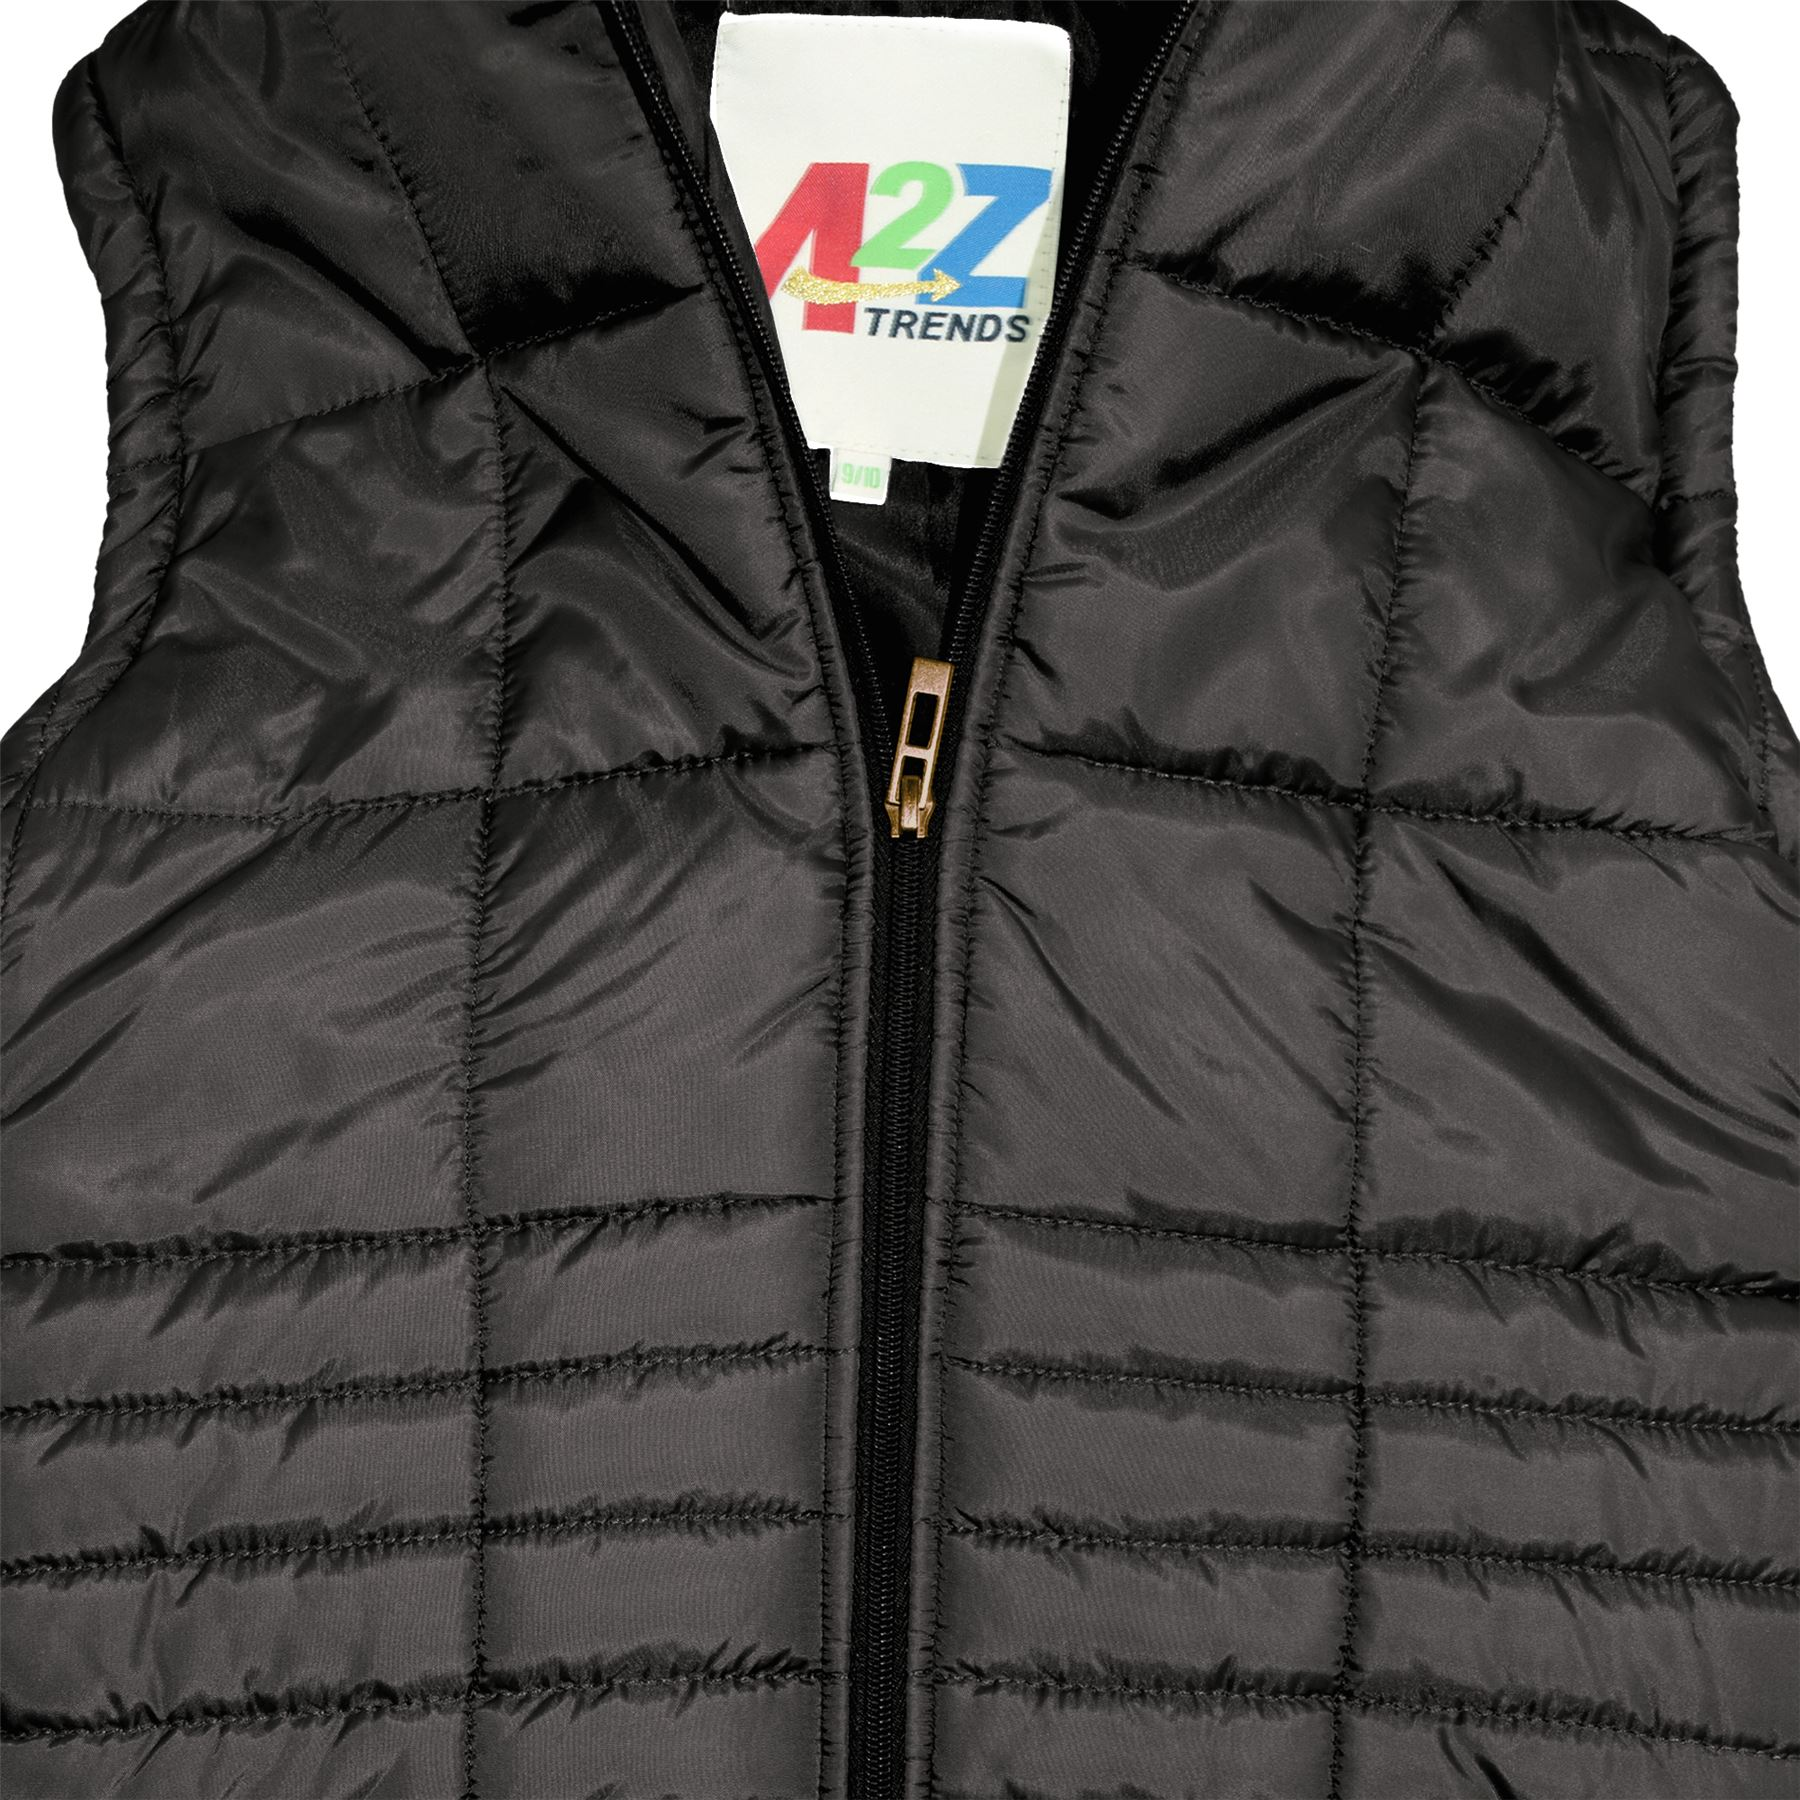 Kids Girls Boys Wine Sleeveless High Neck Padded Gilet Bodywarmer Jackets 5-13Yr